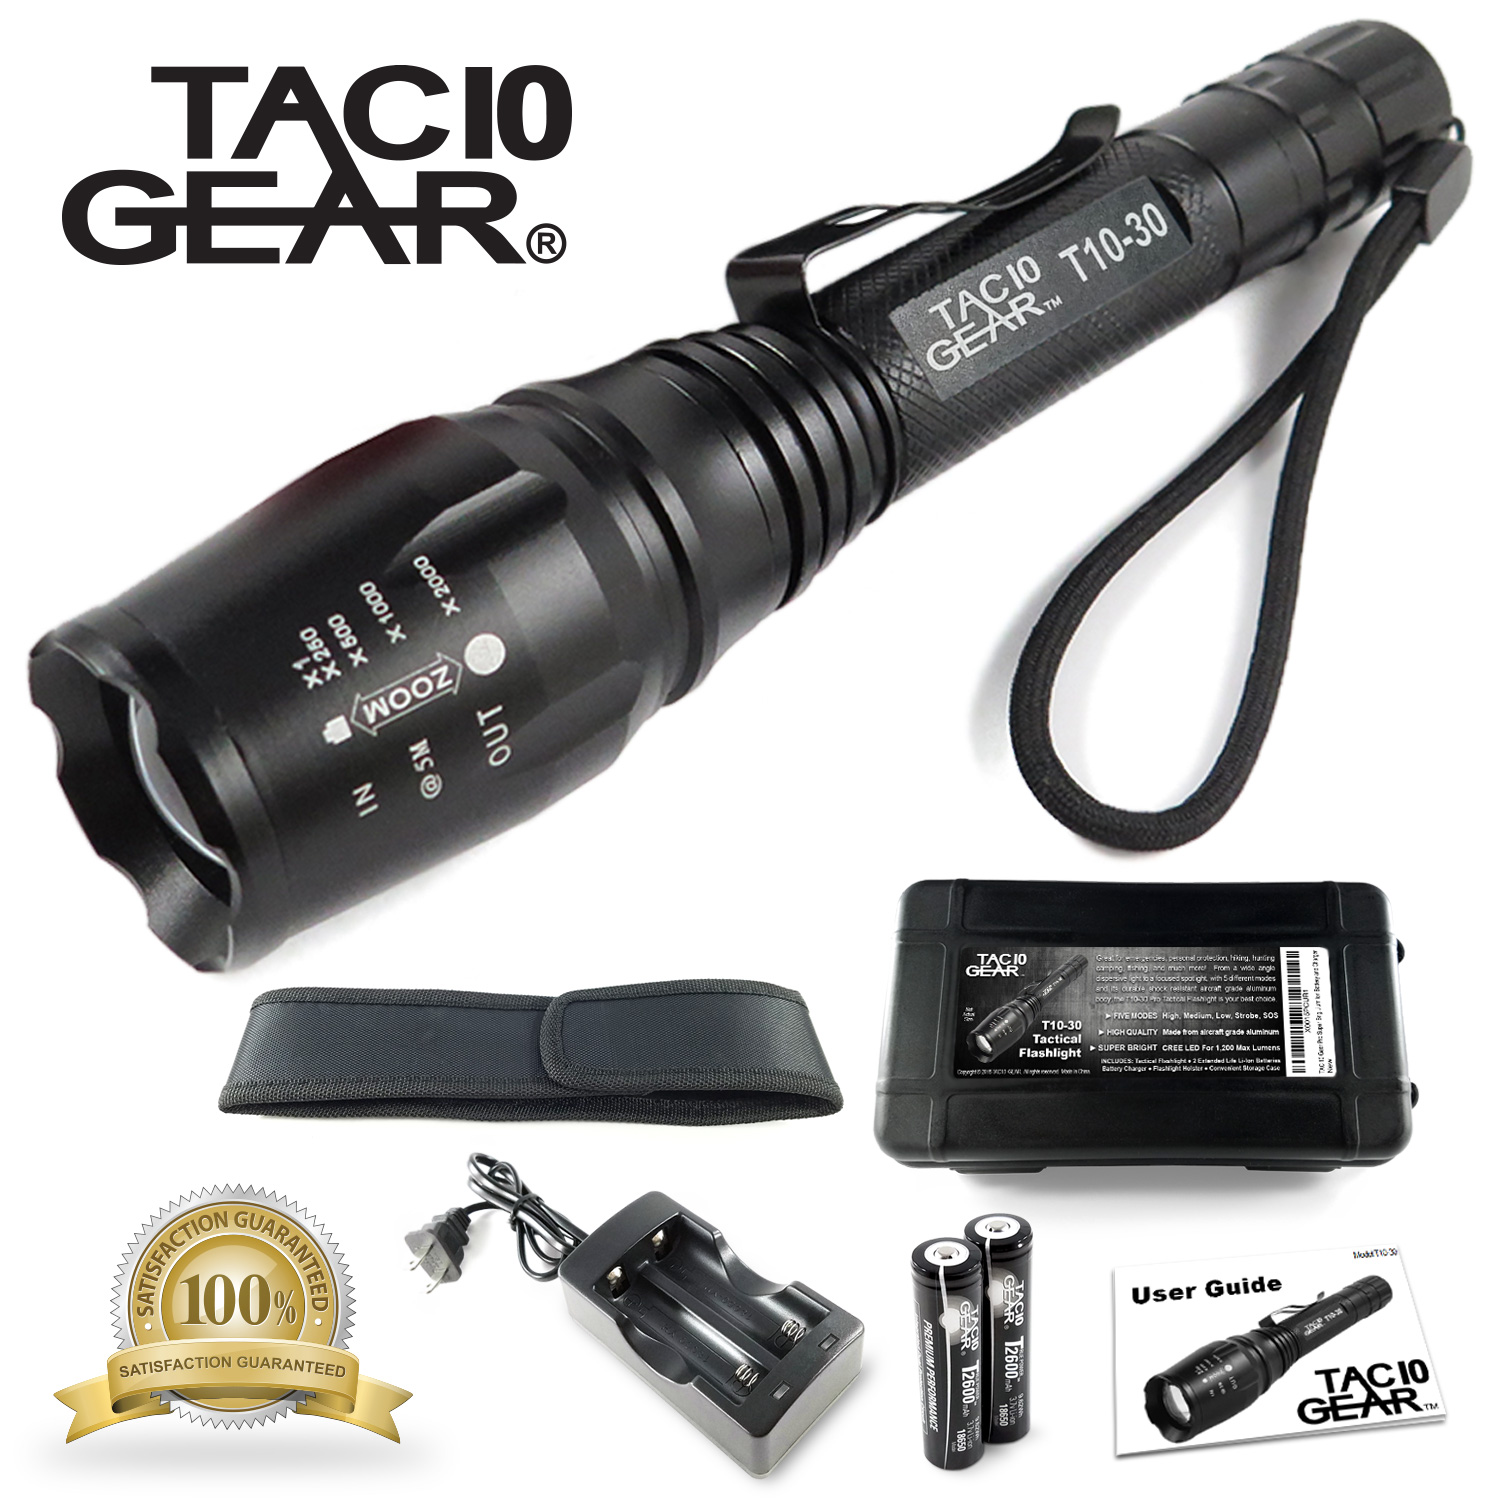 TAC10 GEAR Tactical LED Flashlight XML-T6 1,000 Lumens Water Resistant with Rechargeable Li-Ion Batteries, Charger, Adjustable Zoom Focus, 5 User Modes, and Holster